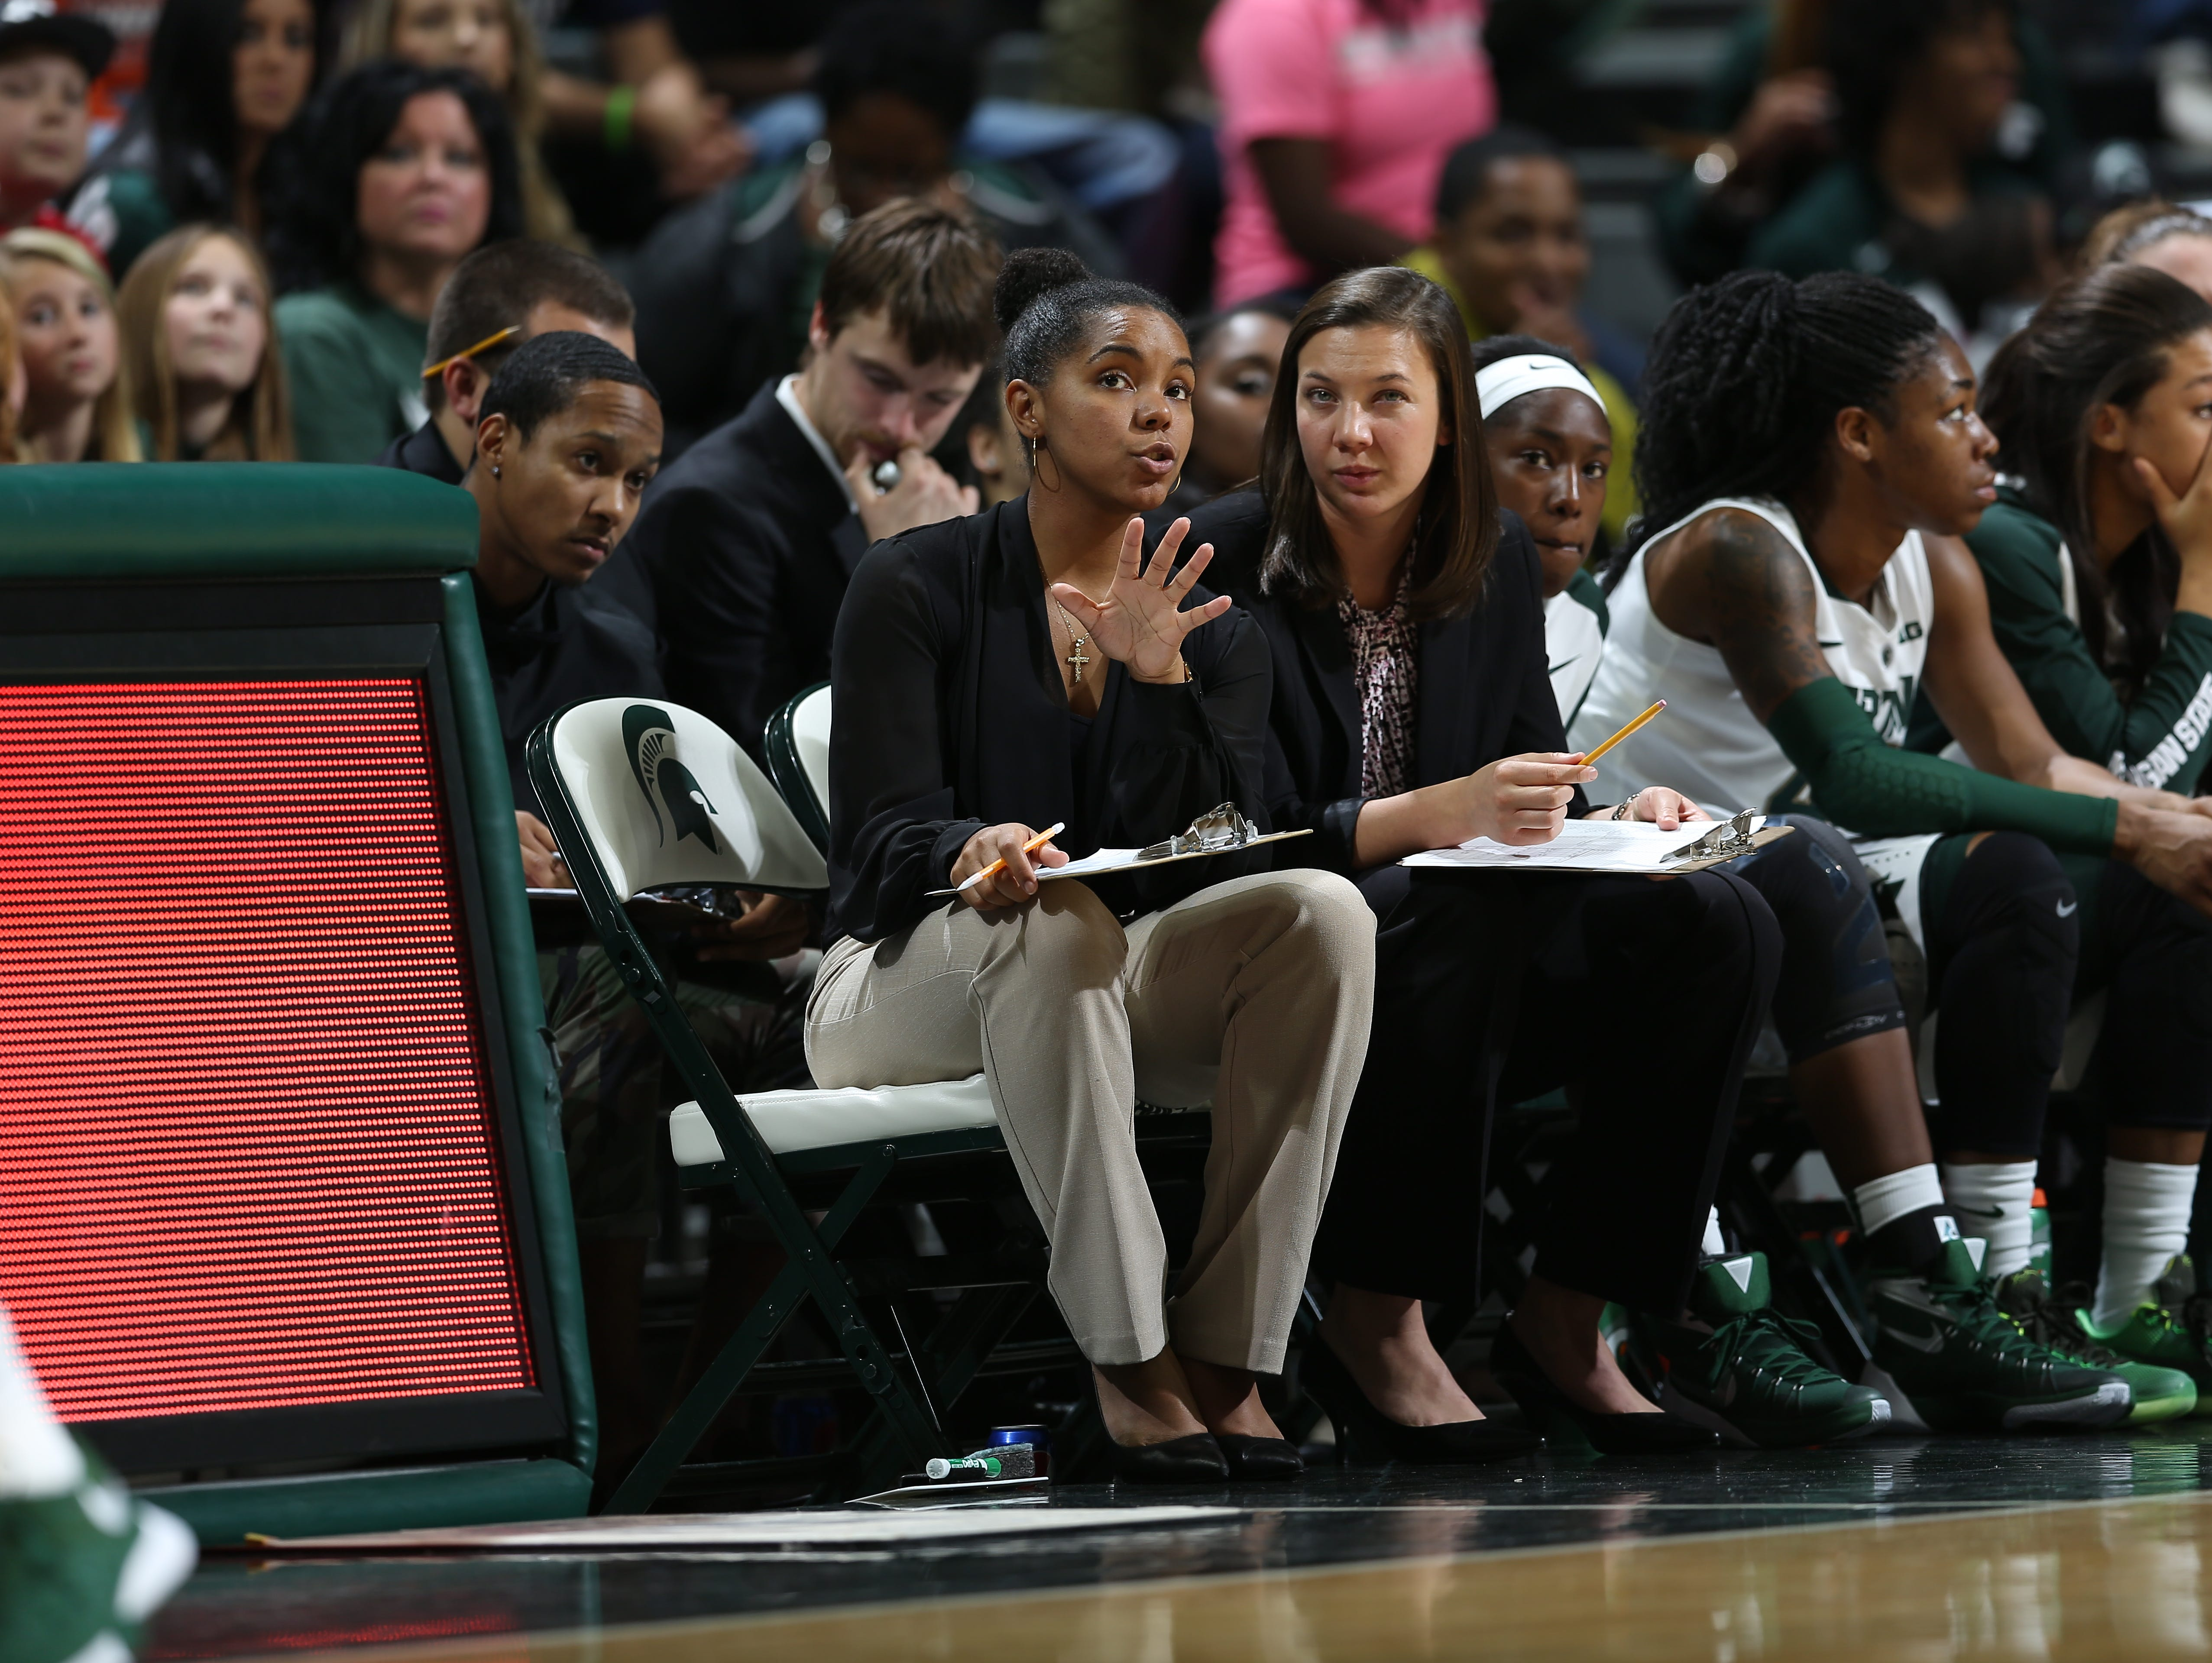 East Lansing graduate Victoria Lipscomb was recently hired as an assistant coach at IUPUI. Lipscomb spent the past two years as a graduate assistant at Michigan State.